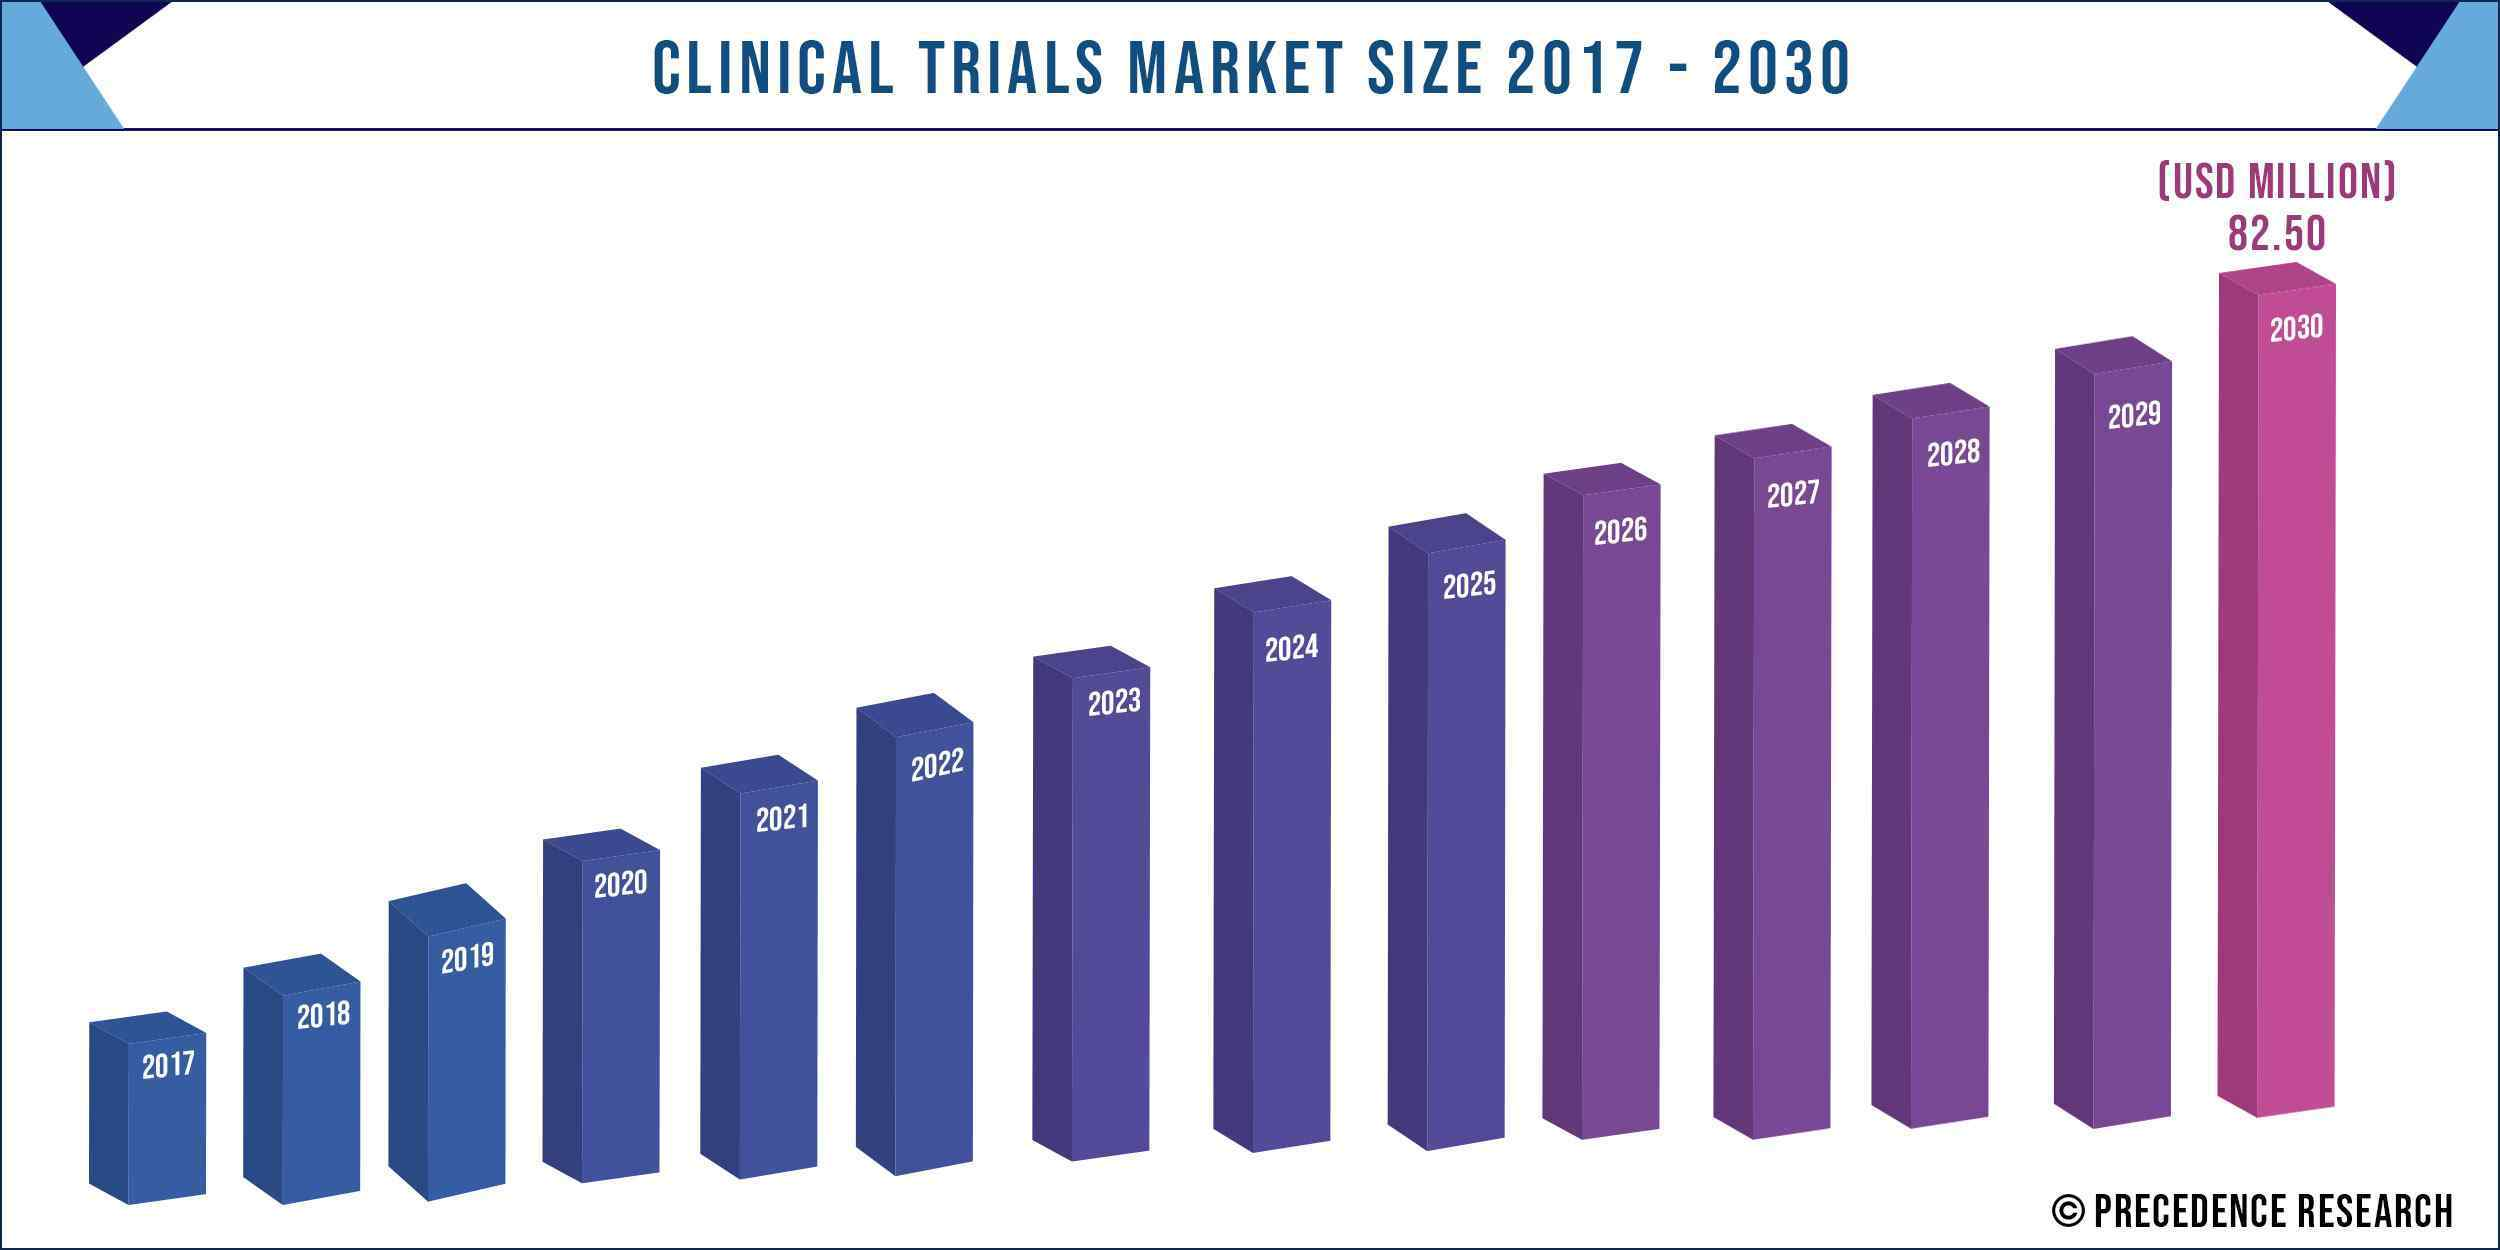 Clinical Trials Market Size 2017 to 2030